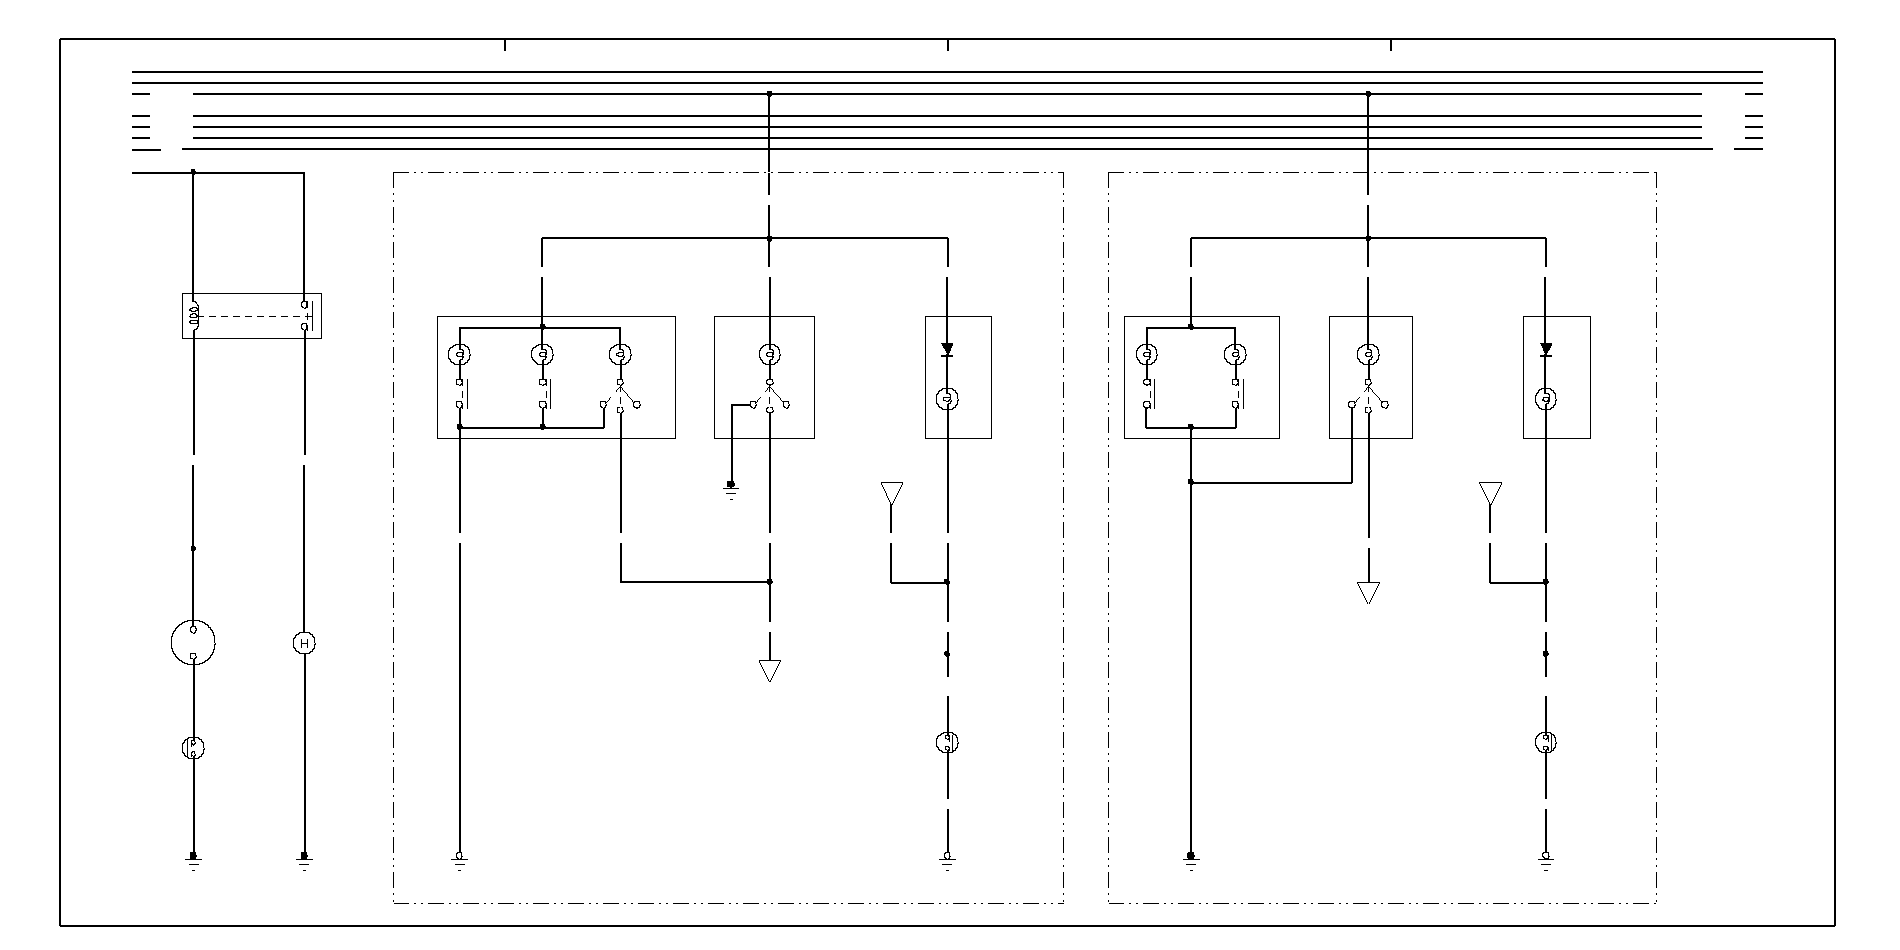 honda jazz wiring diagram html